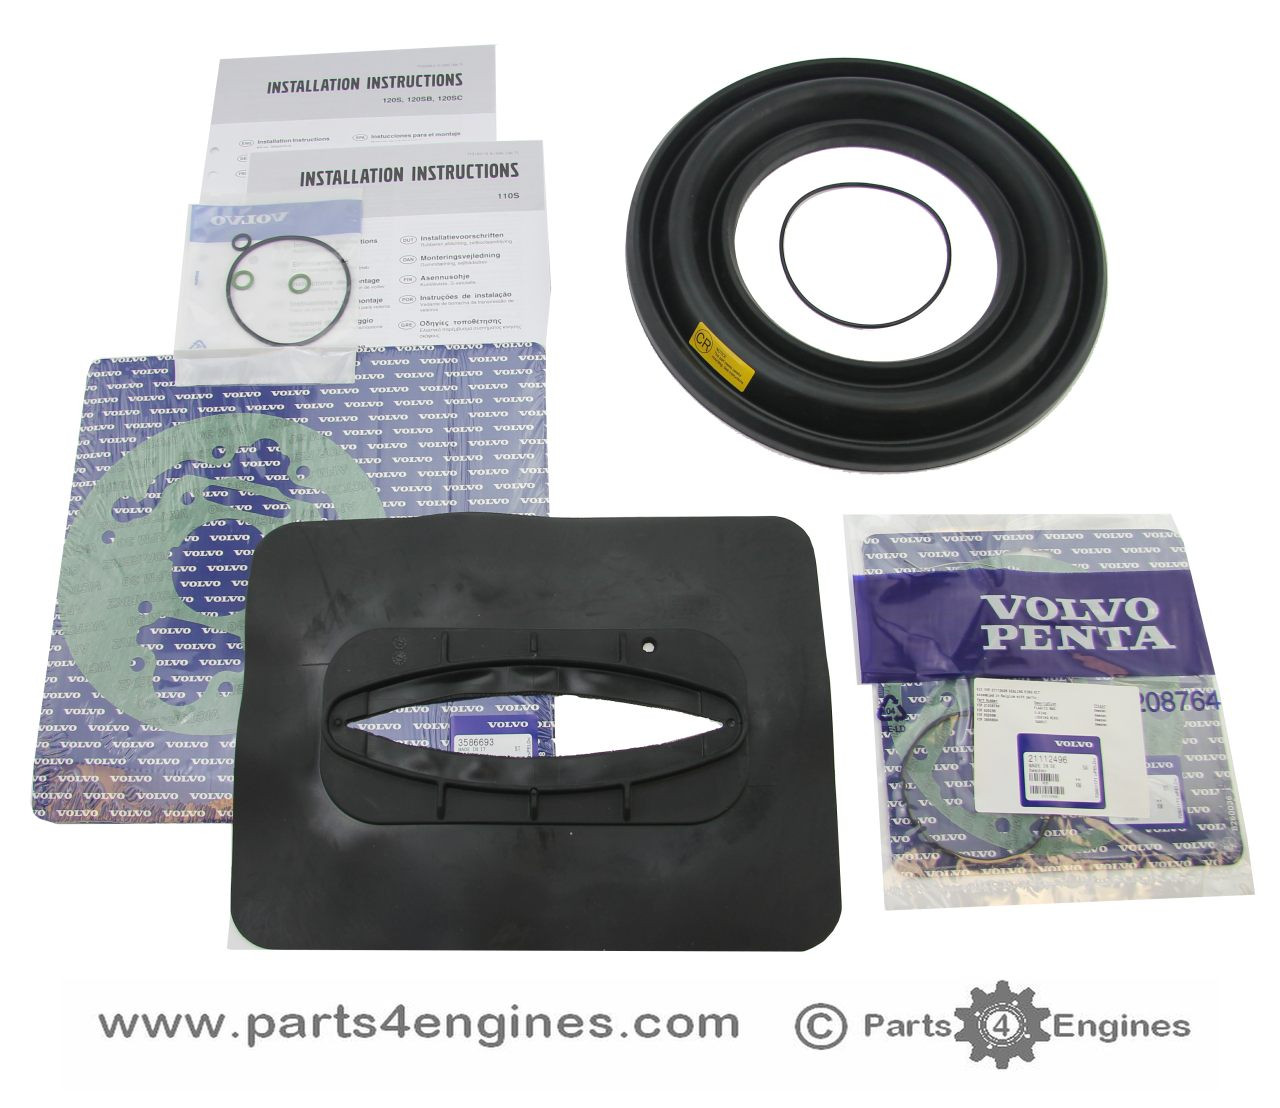 Volvo Penta Rubber Diaphragm  and gasket kit for 110S, 120S, 130S, 150S and MS25S  sail drive